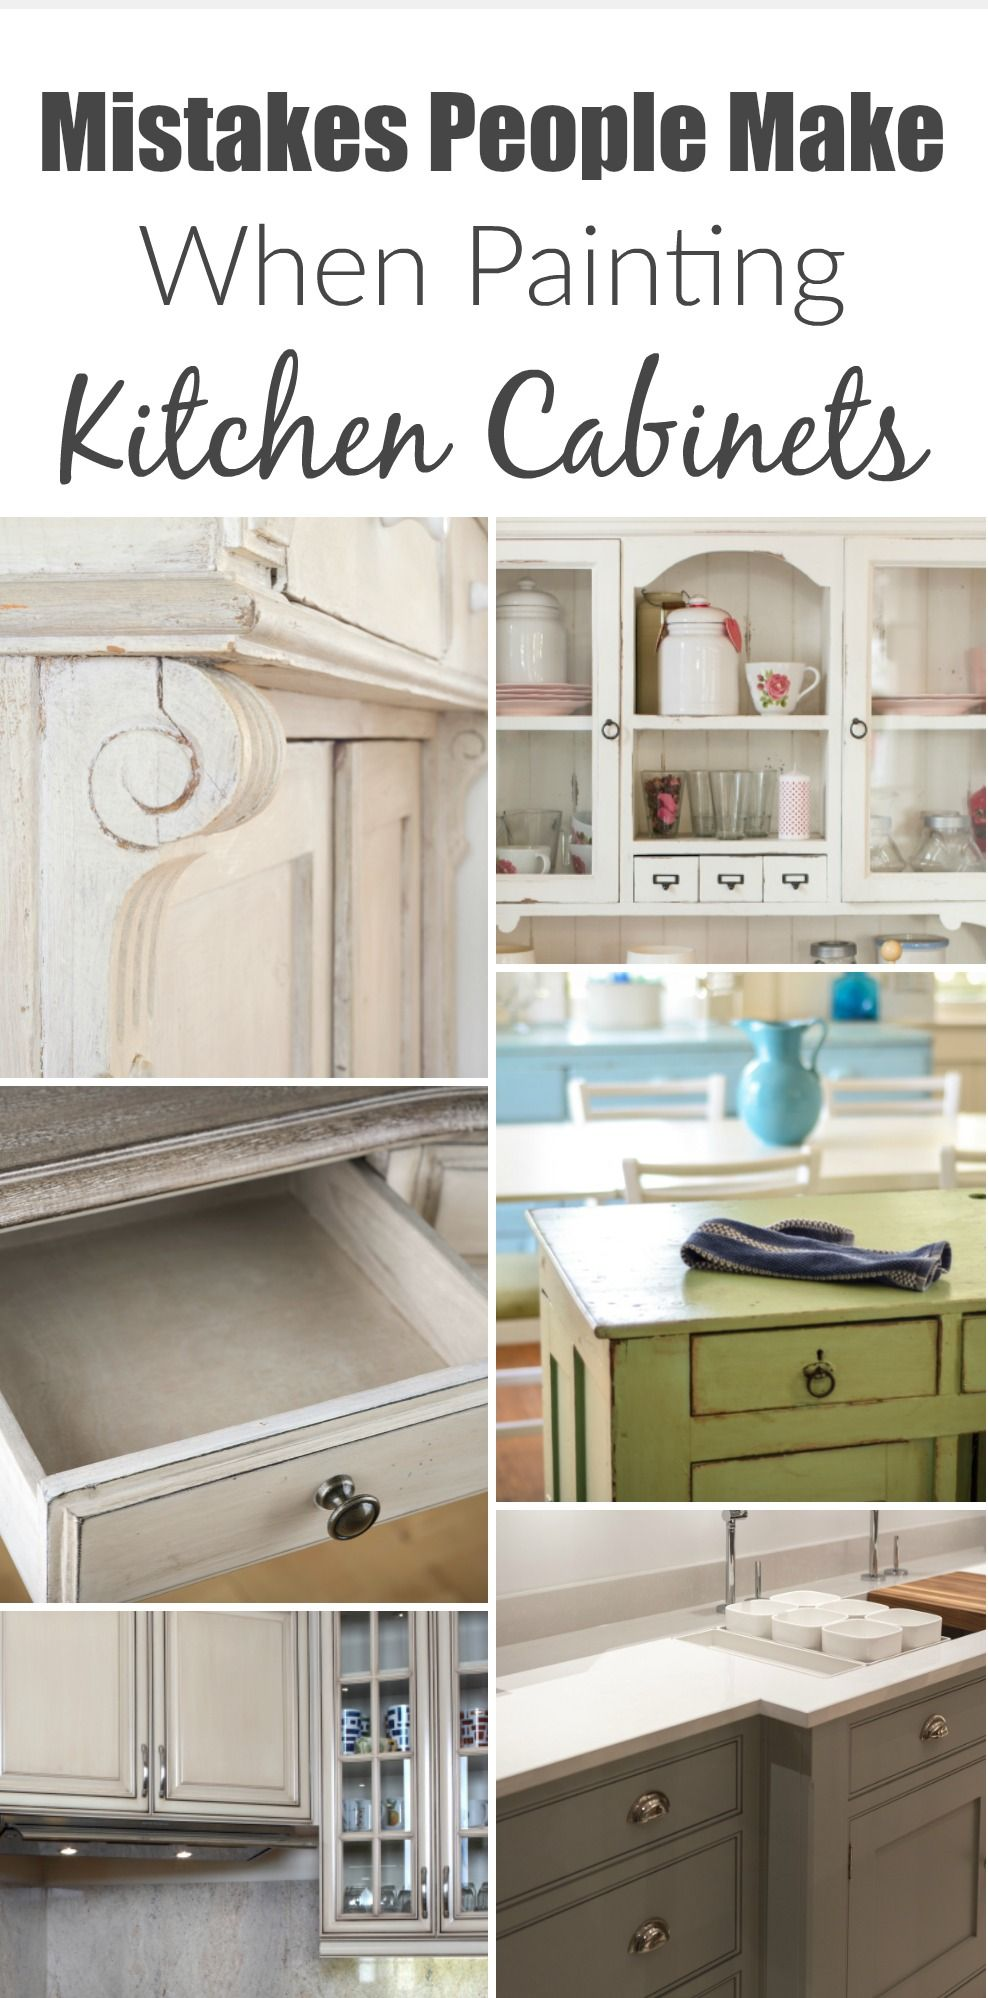 5 Mistakes People Make When Painting Kitchen Cabinets Painted Furniture Ideas Painting Kitchen Cabinets Kitchen Renovation Cabinet